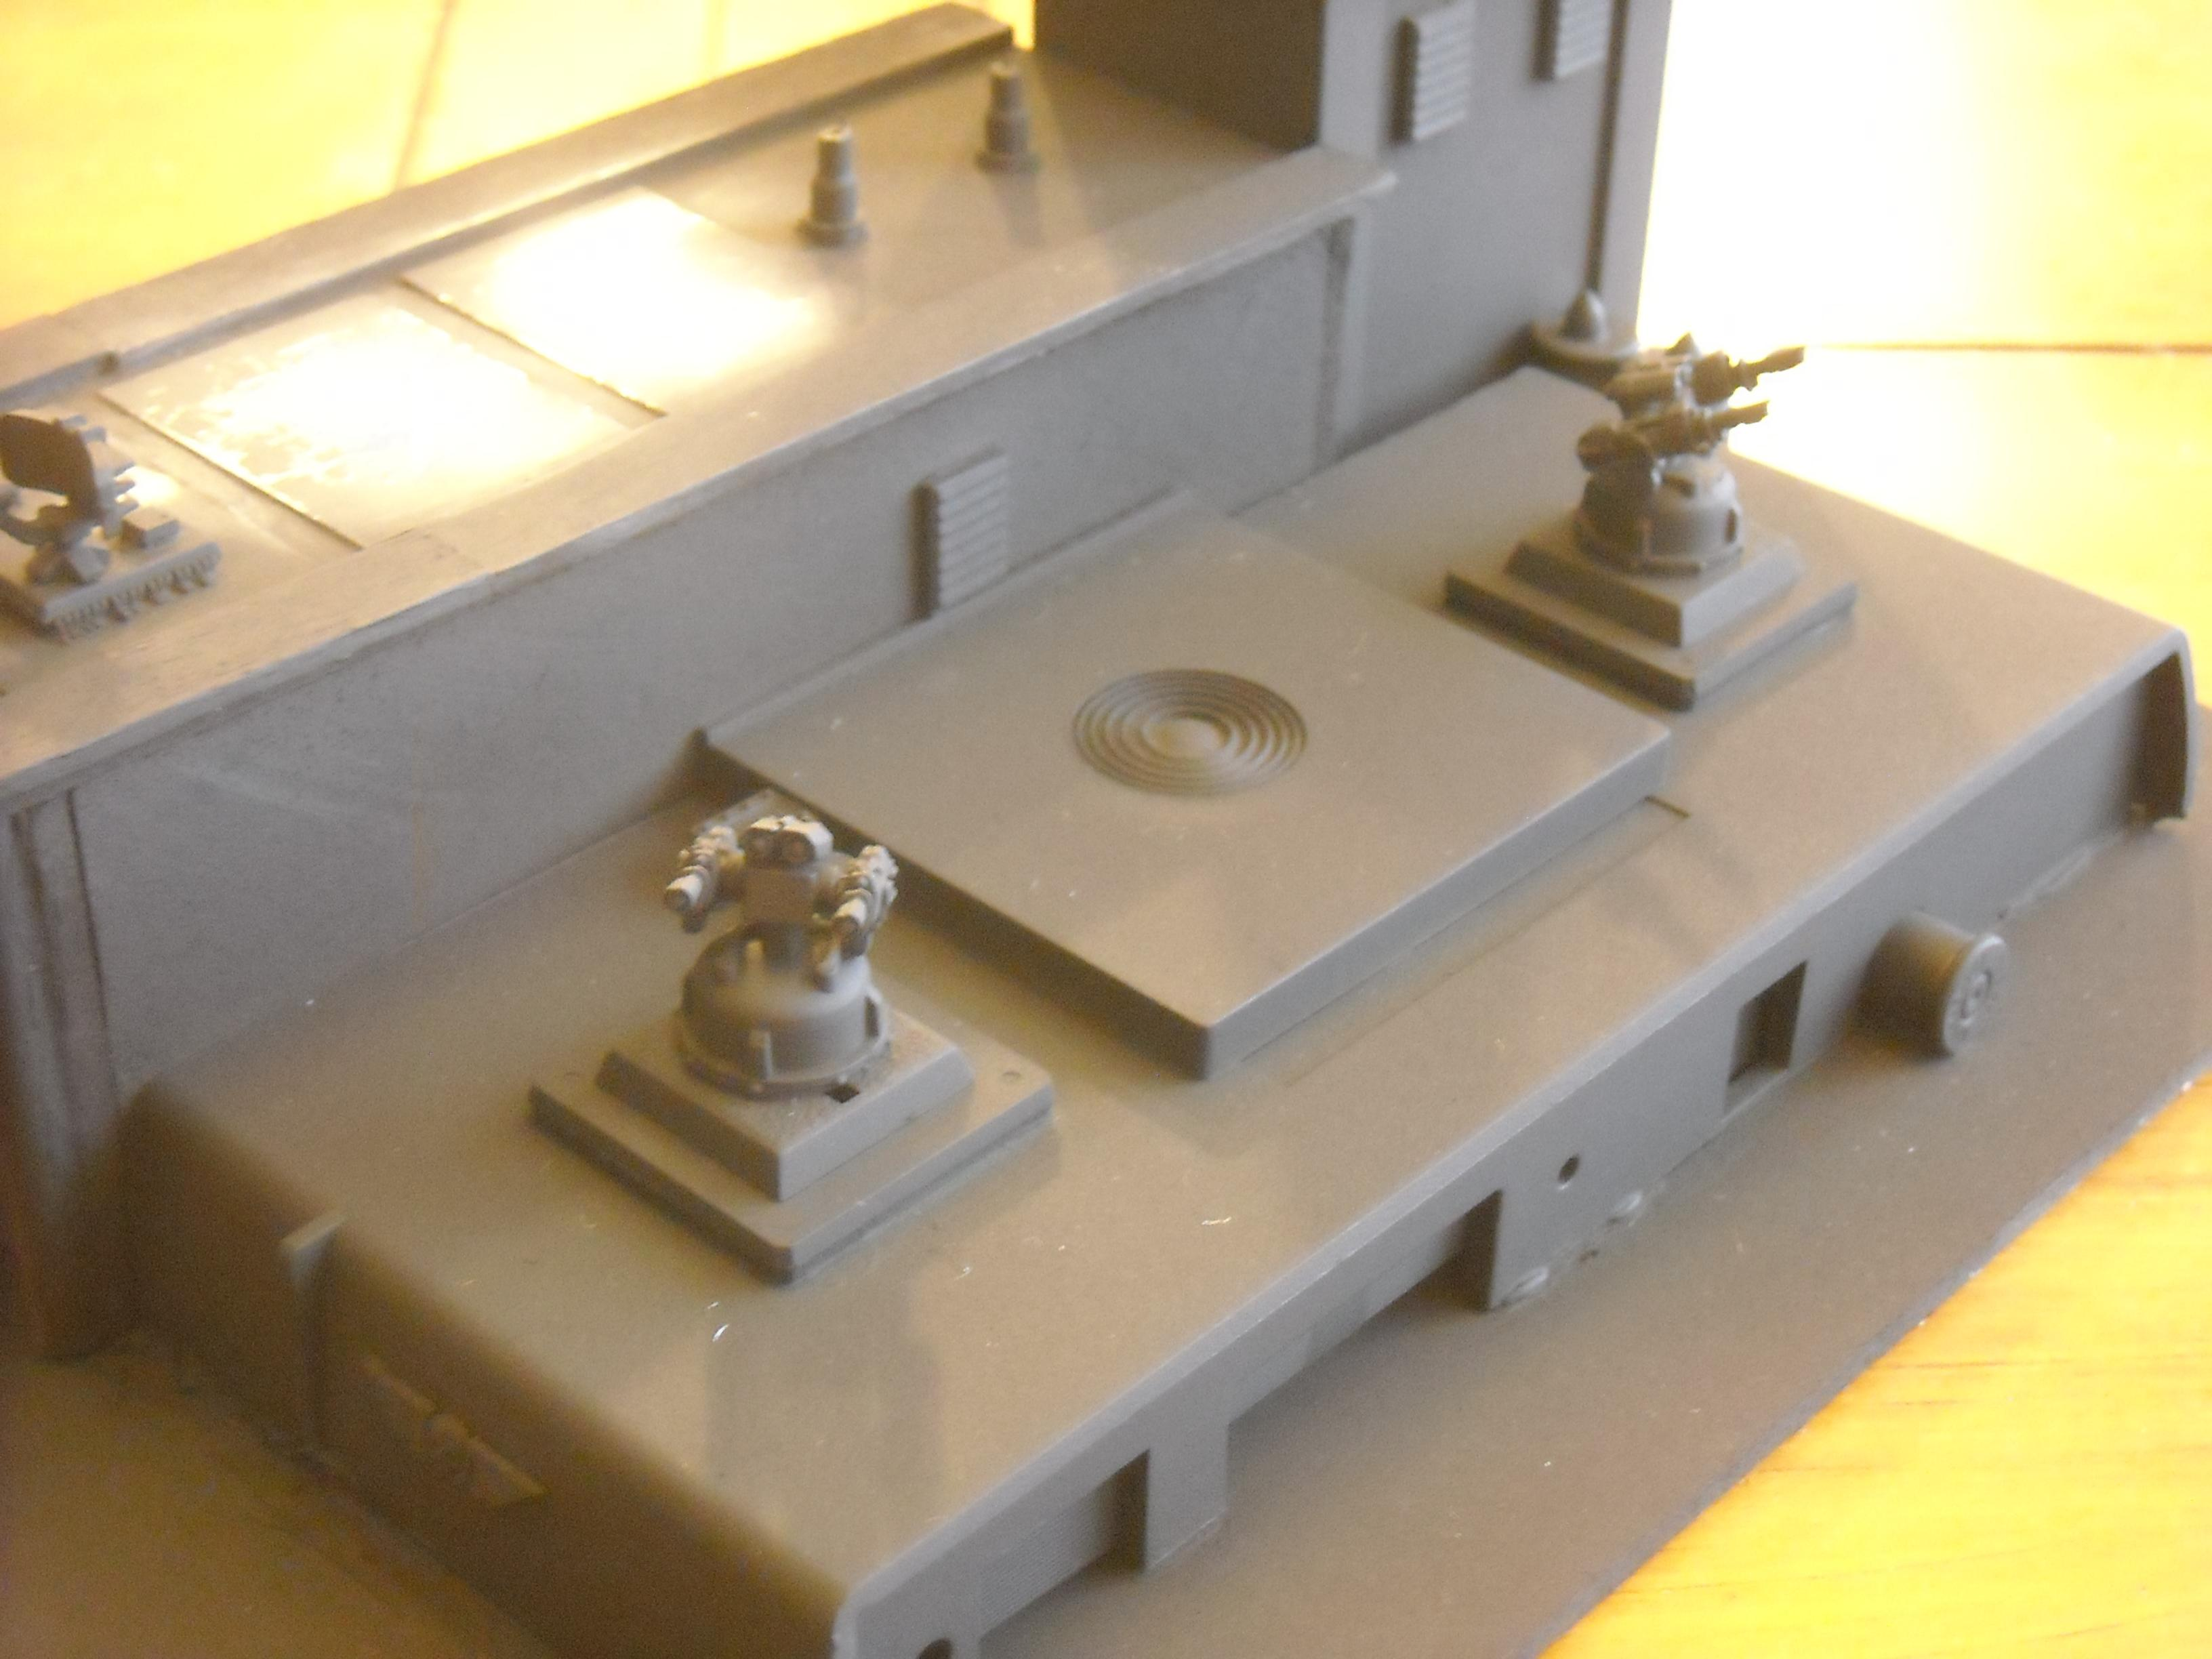 EPIC 40K - DA Command Center - detail of pad cannons